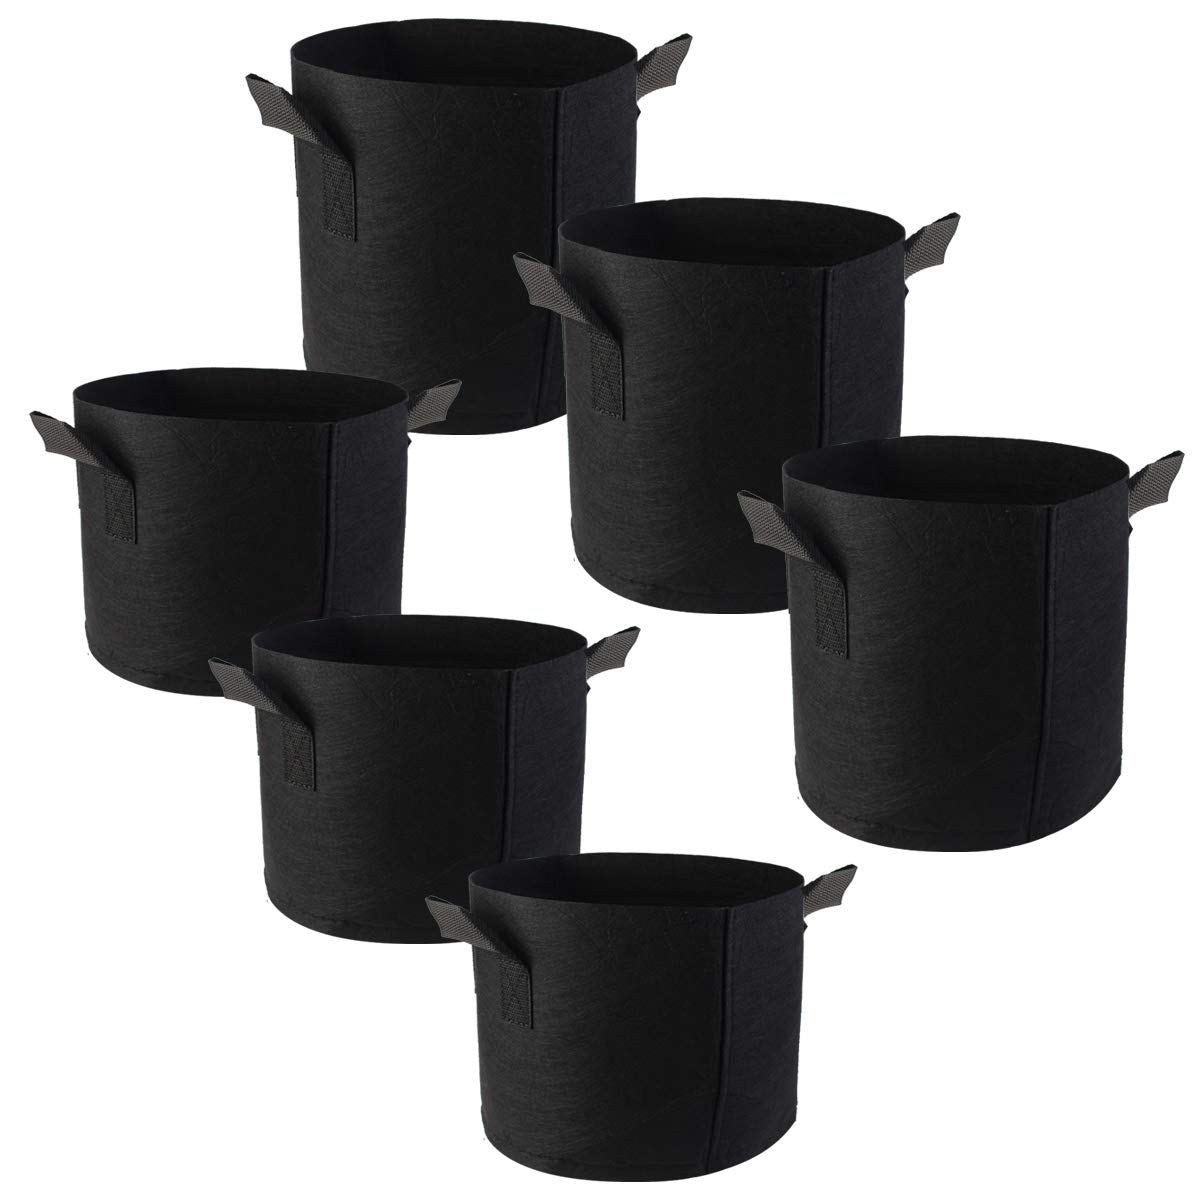 Poualss 6-Pack Thickened Grow Bags 3 Gallon, 5 Gallon Plant Grow Bags Non-Woven Aeration Fabric with Handles Growing Bags